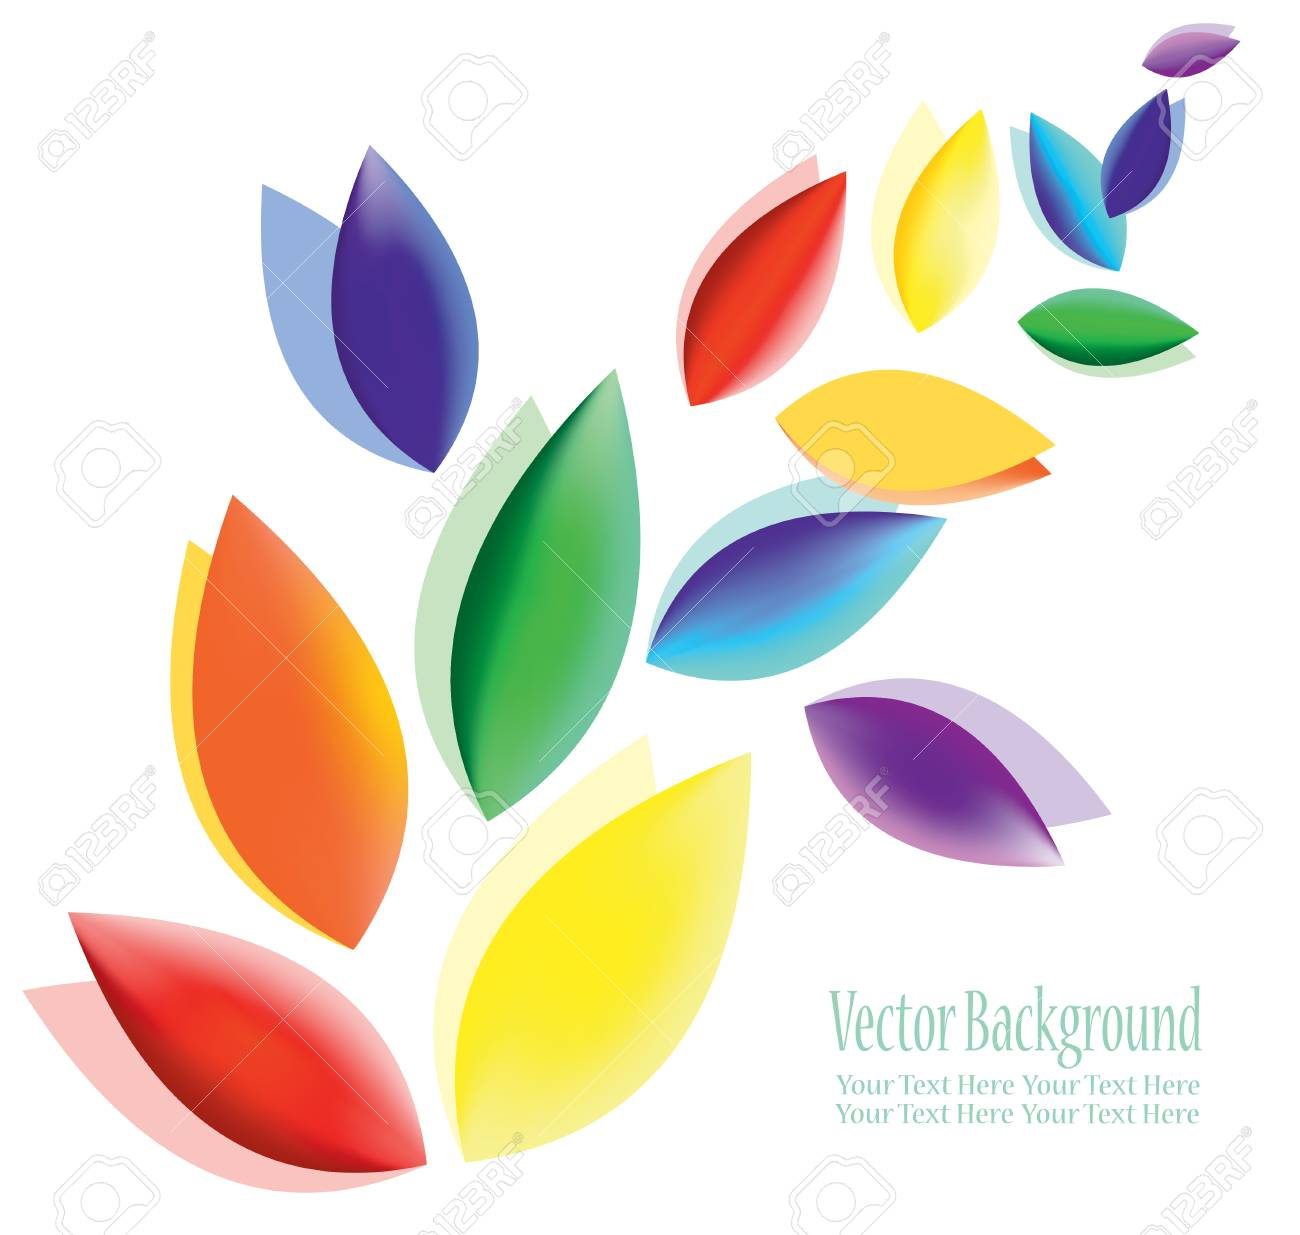 Abstract Colorful Fluttering Petals A Symbol Of Harmony Purity